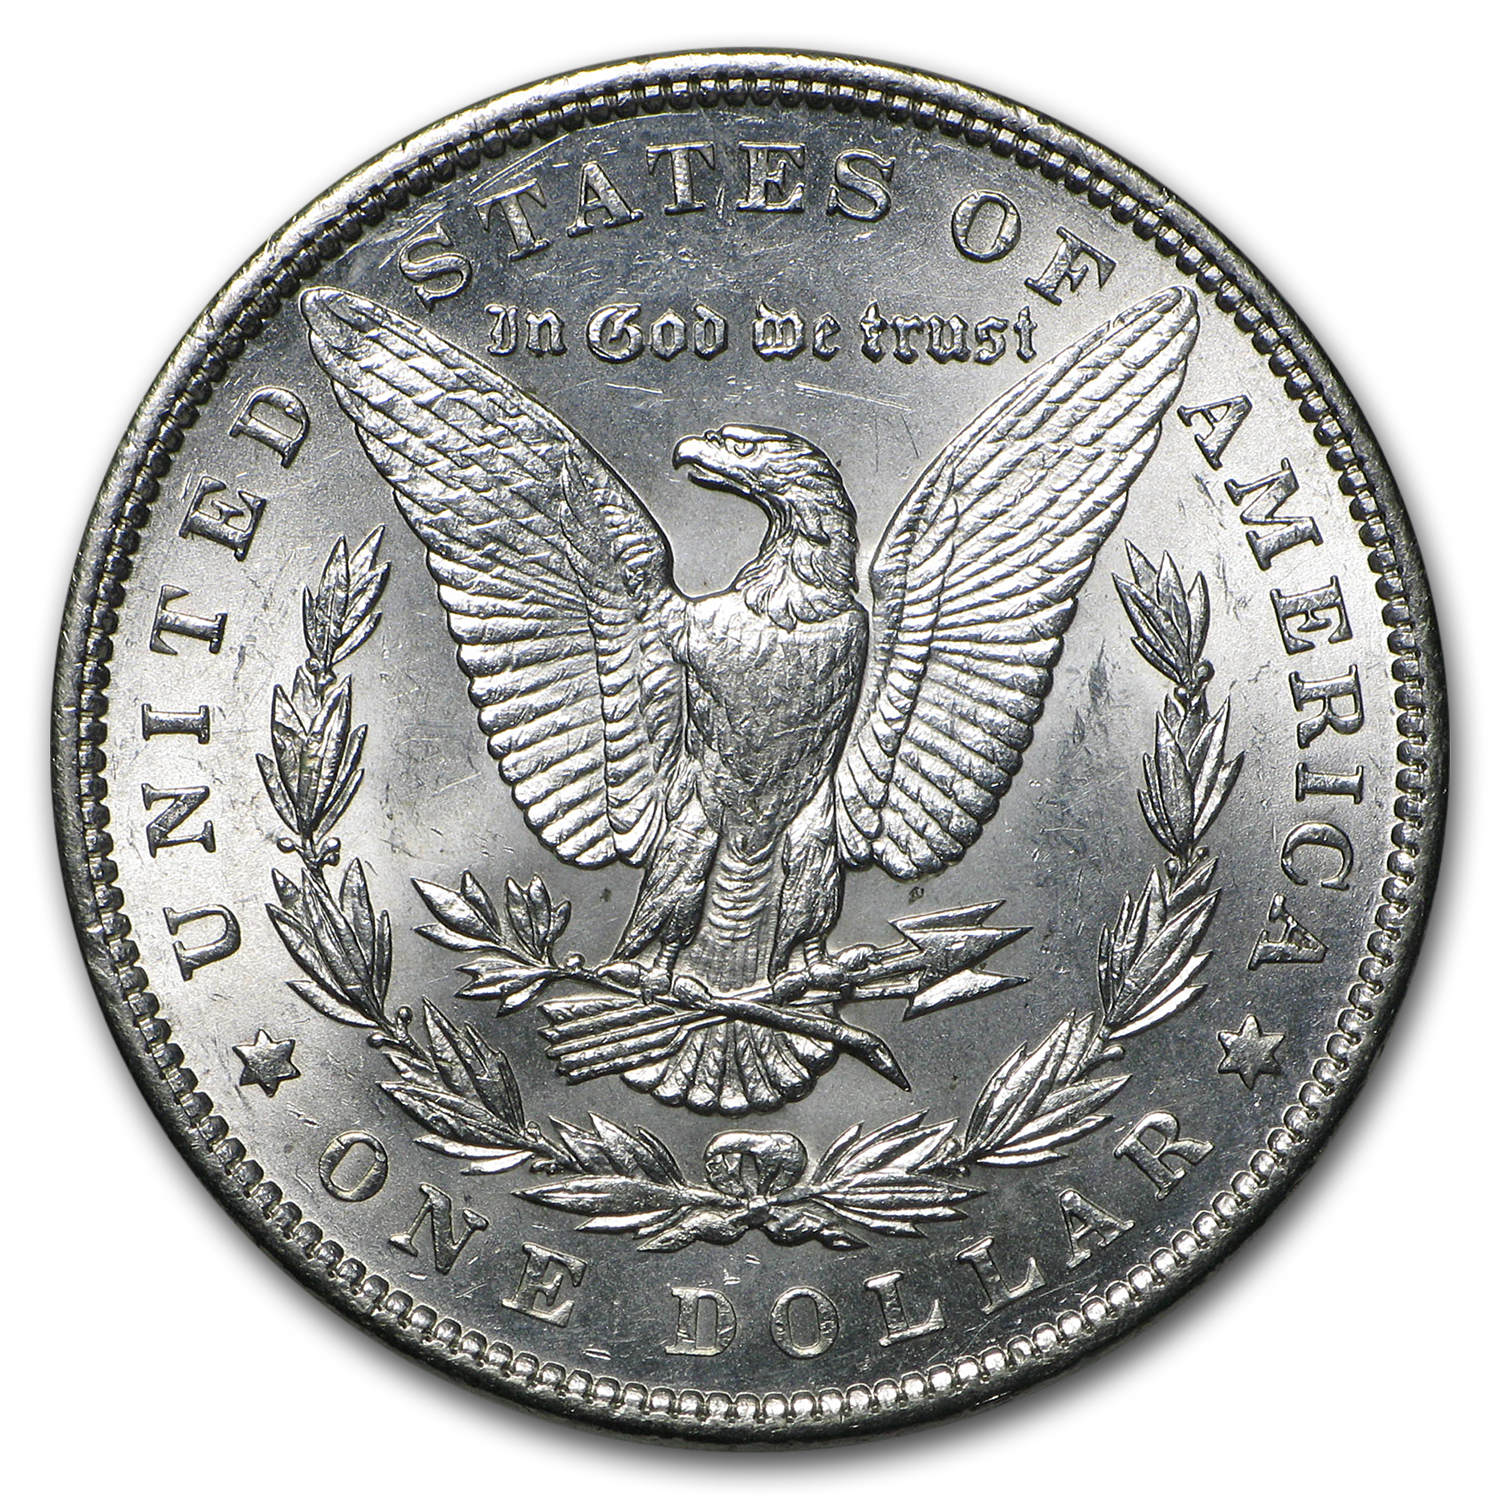 1894 Morgan Dollar - Brilliant Uncirculated